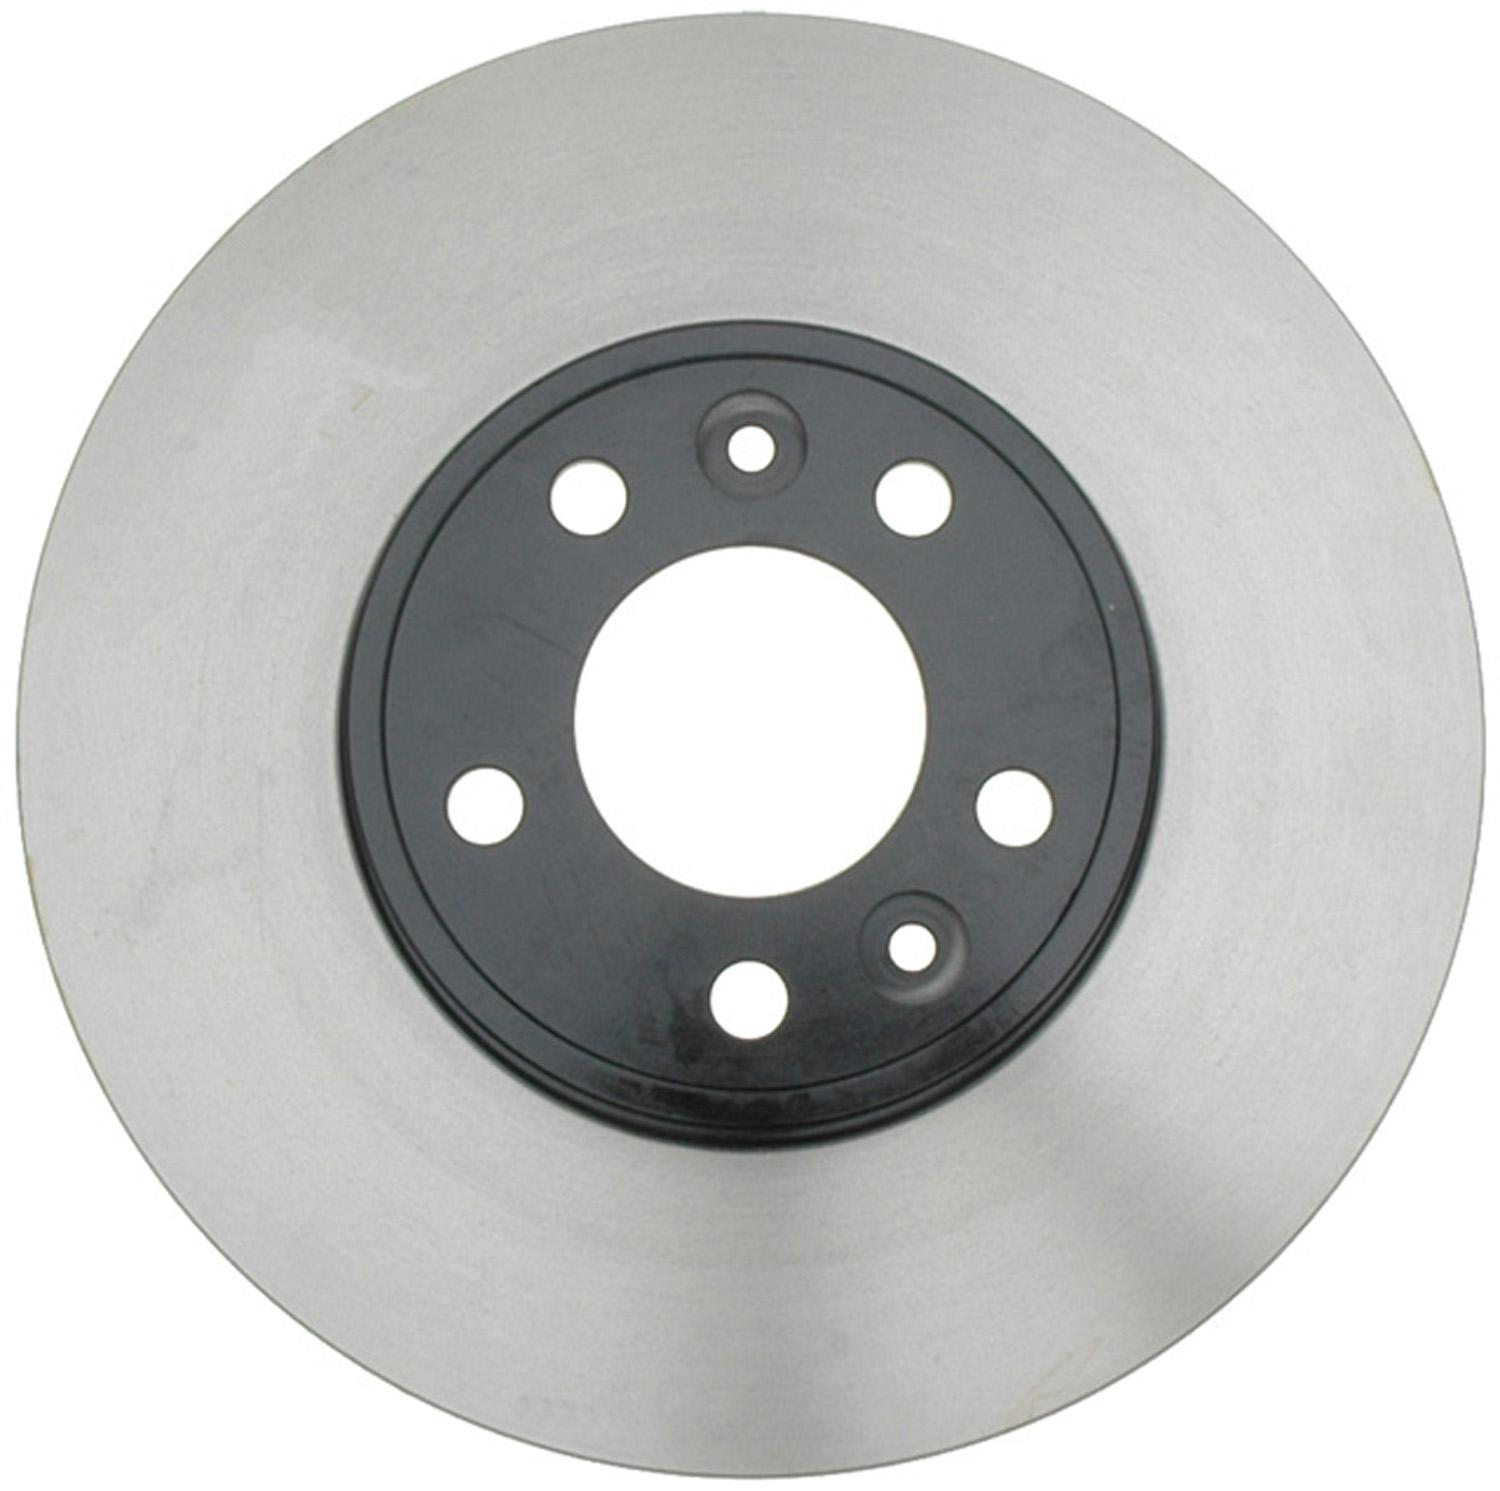 ACDELCO PROFESSIONAL BRAKES - Disc Brake Rotor (Front) - ADU 18A865